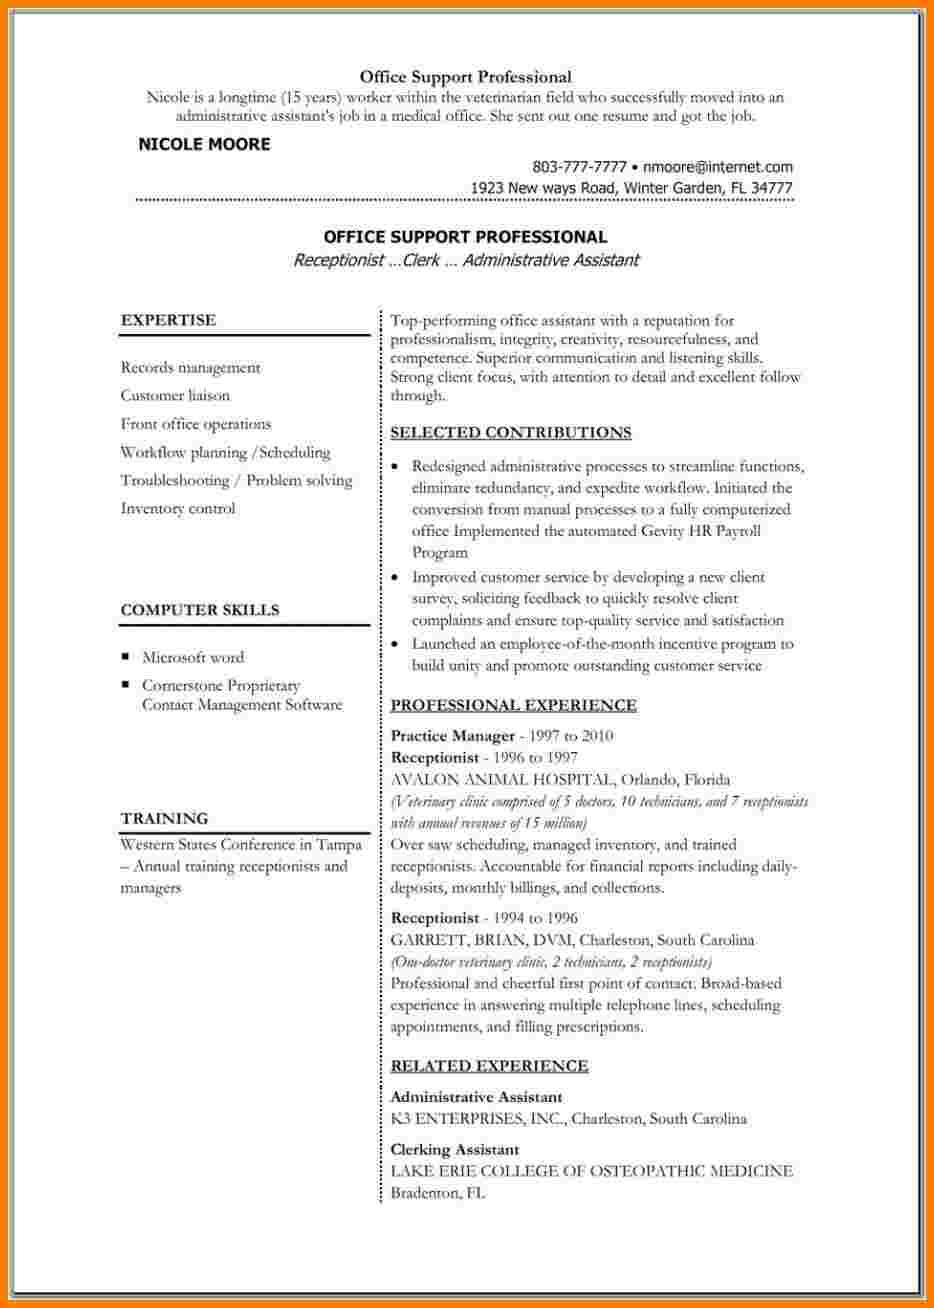 Free Resume Templates Microsoft Word Medical Resumeplates Microsoft Word Actorplate Office Boy Sample Free Ms free resume templates microsoft word|wikiresume.com